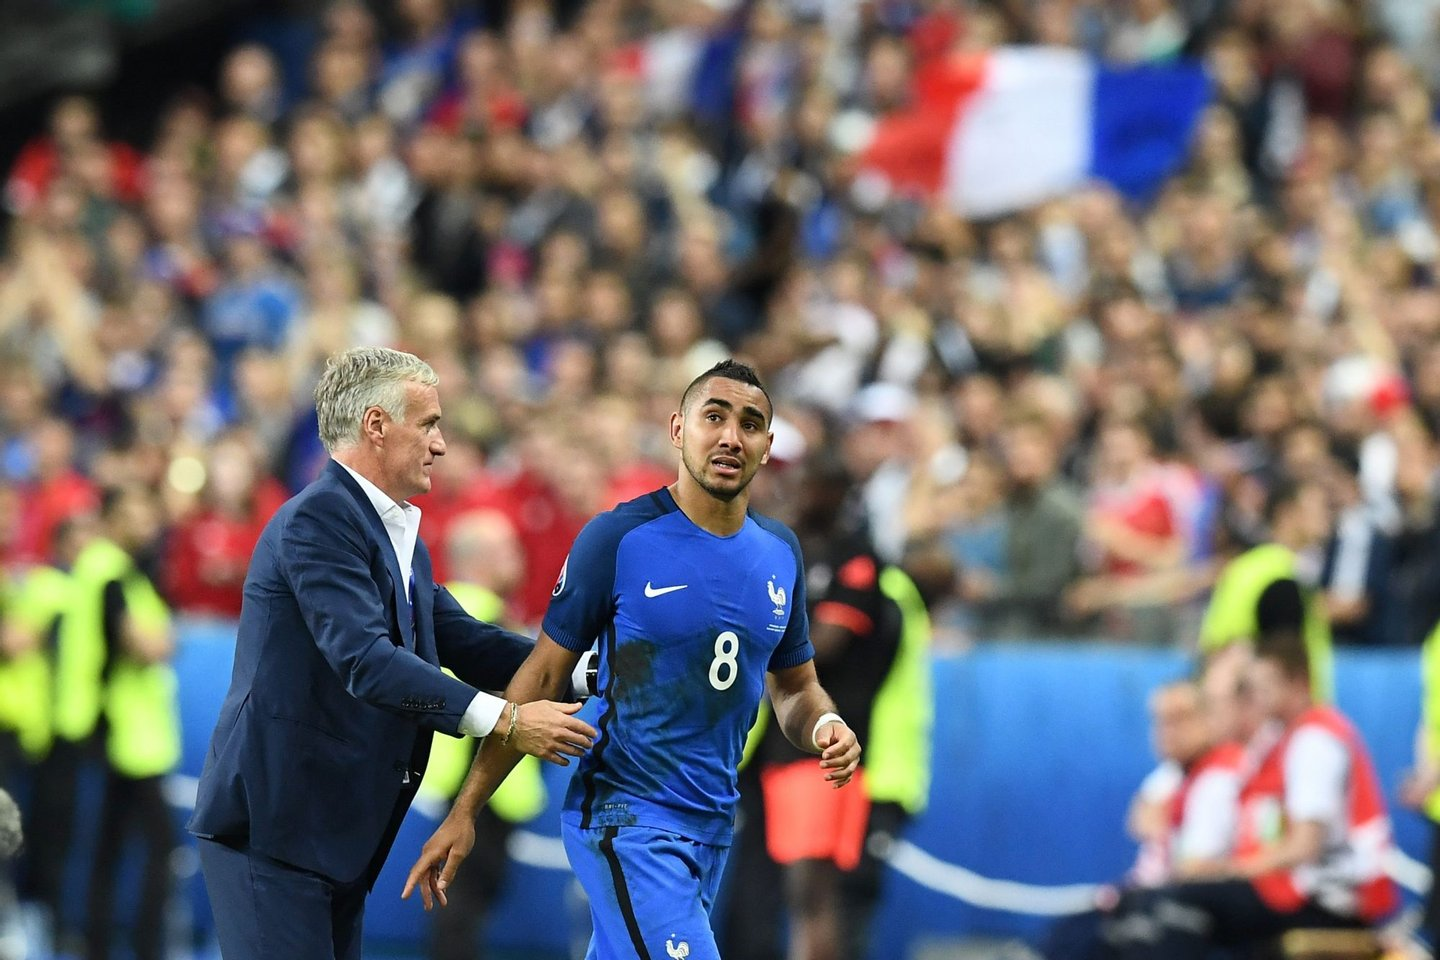 France's forward Dimitri Payet (R) is congratulated by France's coach Didier Deschamps after scoring the 2-1 during the Euro 2016 group A football match between France and Romania at Stade de France, in Saint-Denis, north of Paris, on June 10, 2016. / AFP / FRANCK FIFE        (Photo credit should read FRANCK FIFE/AFP/Getty Images)